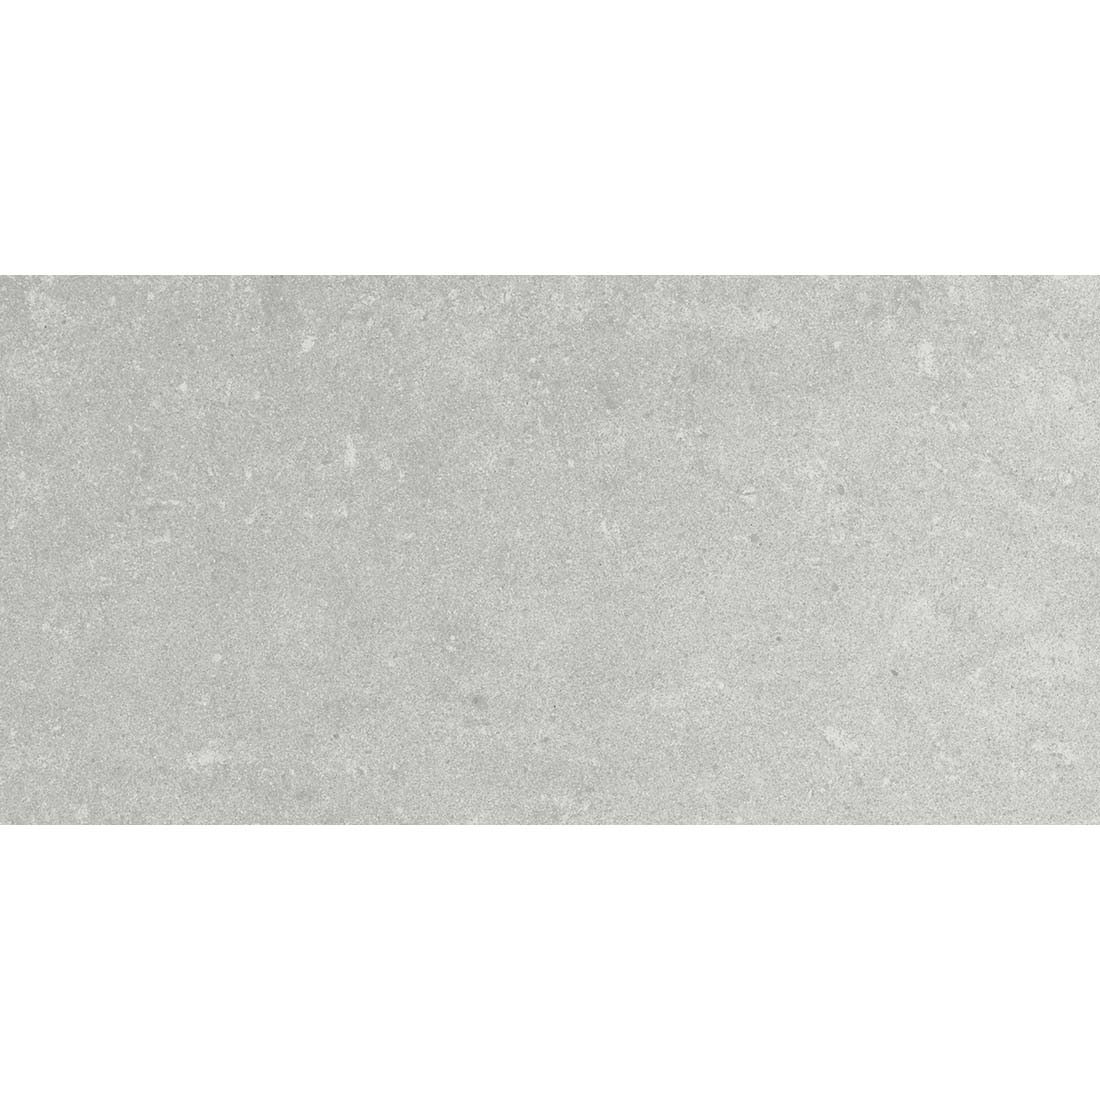 Jumeirah 30x60 Light Grey Polished 1